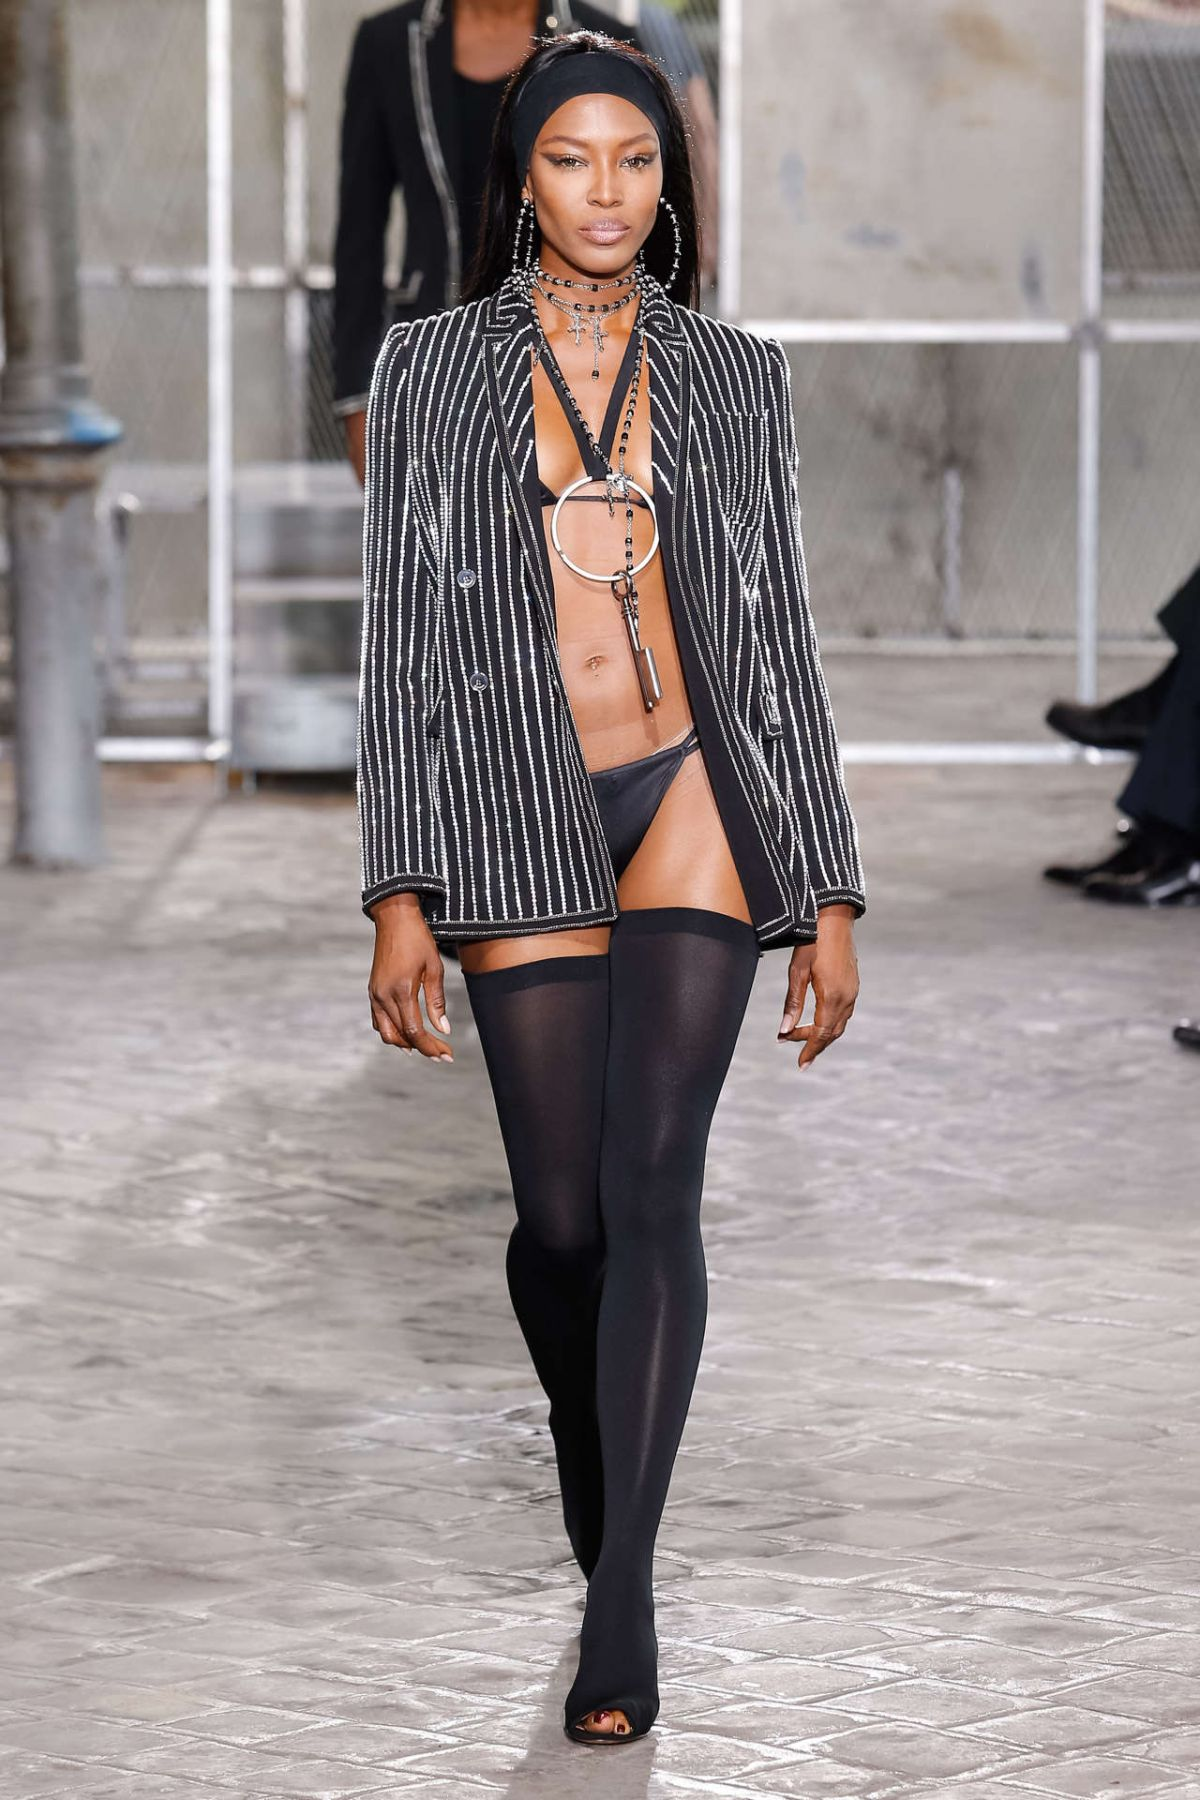 NAOMI CAMPBELL on the Runway of Givenchy Fashion Show in paris